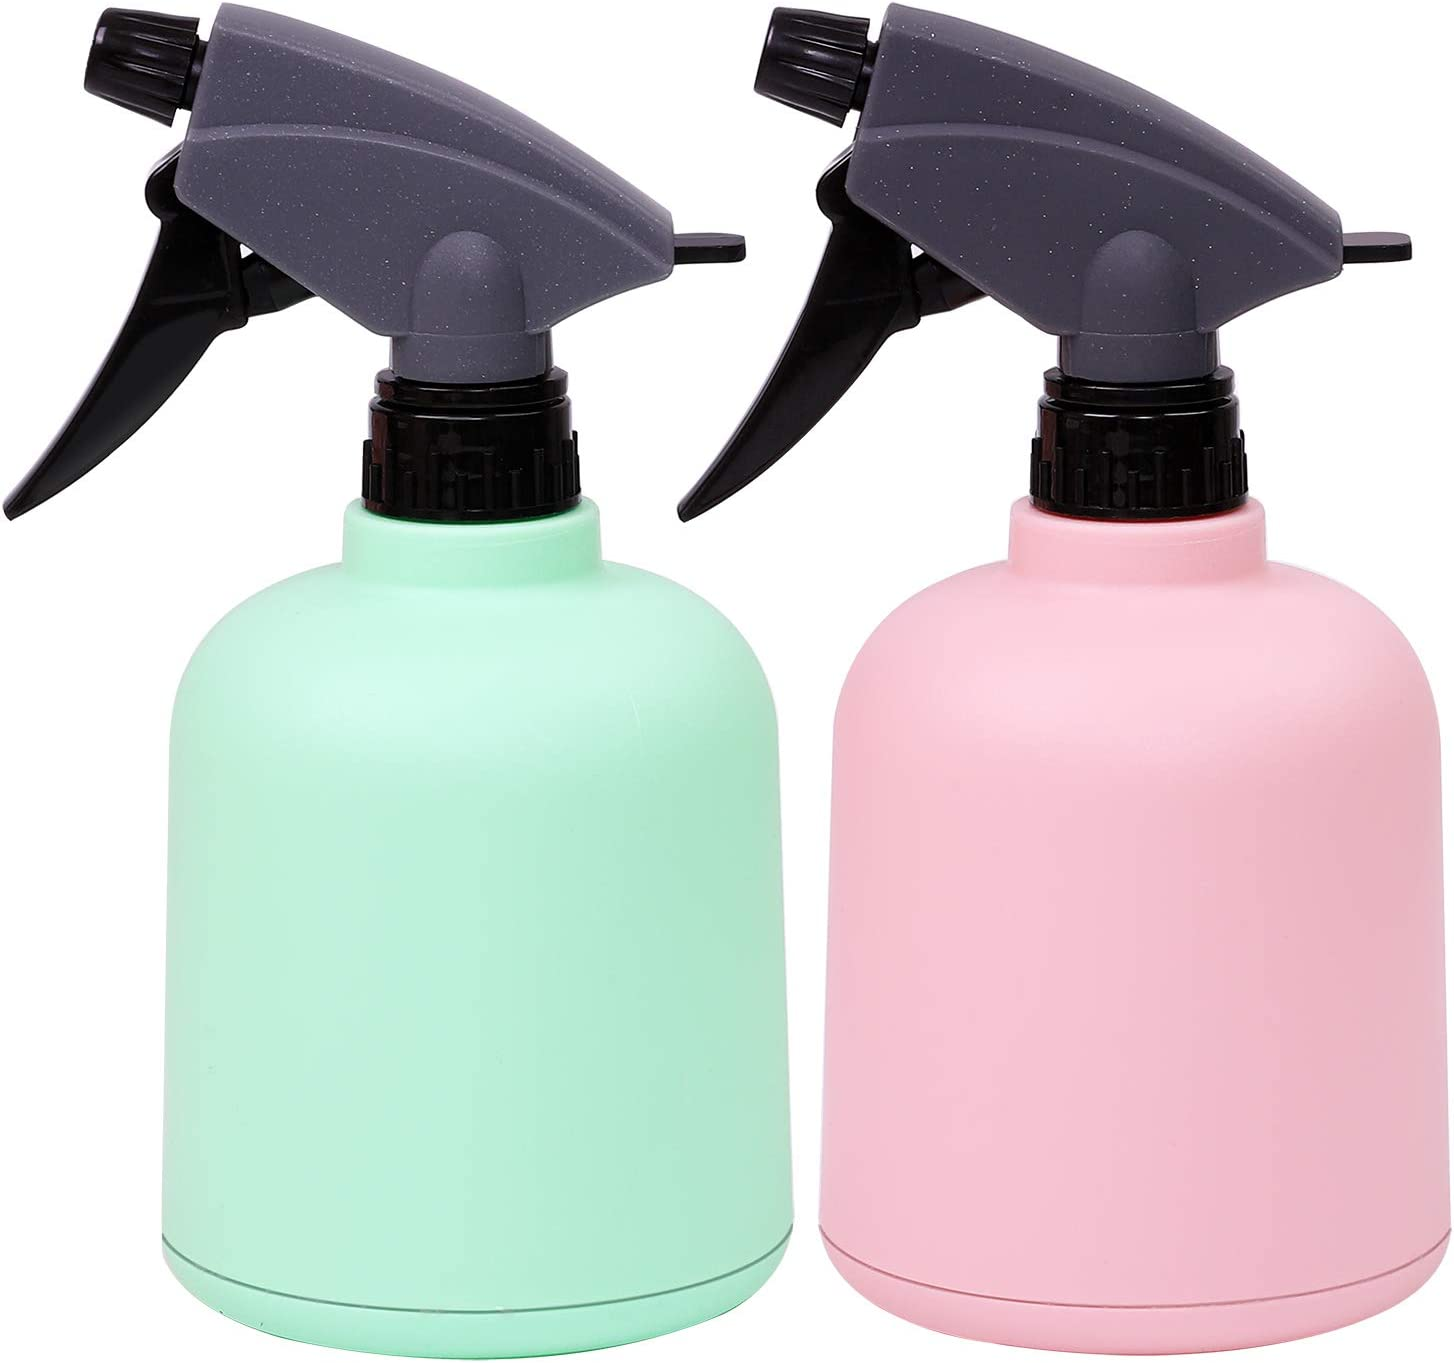 URATOT 2 Pieces Green and Pink Plastic Spray Bottle Empty Spray Bottle Colorful Bottles for Gardening, Cleaning, 600ml : Garden & Outdoor